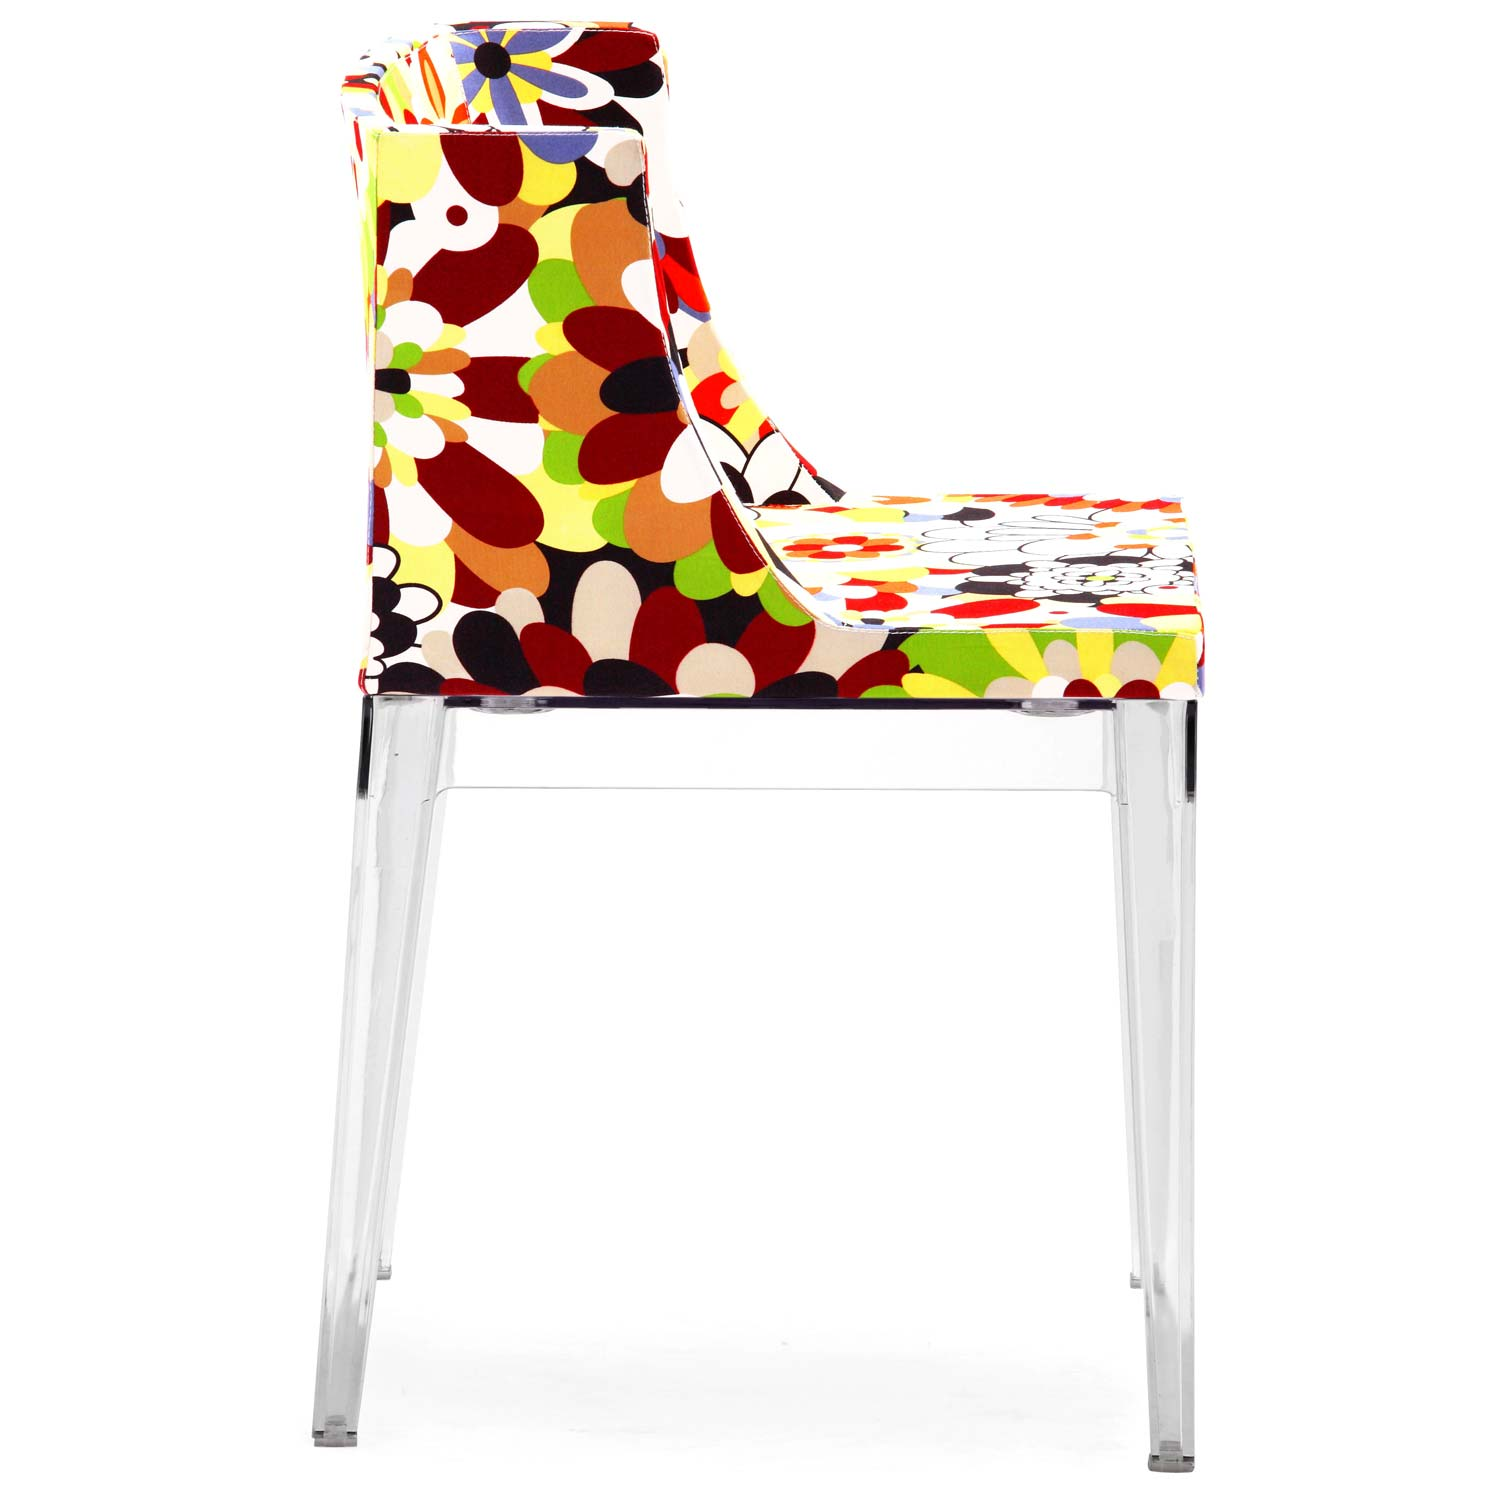 The eye catchy shape of the chair makes it even more outstanding